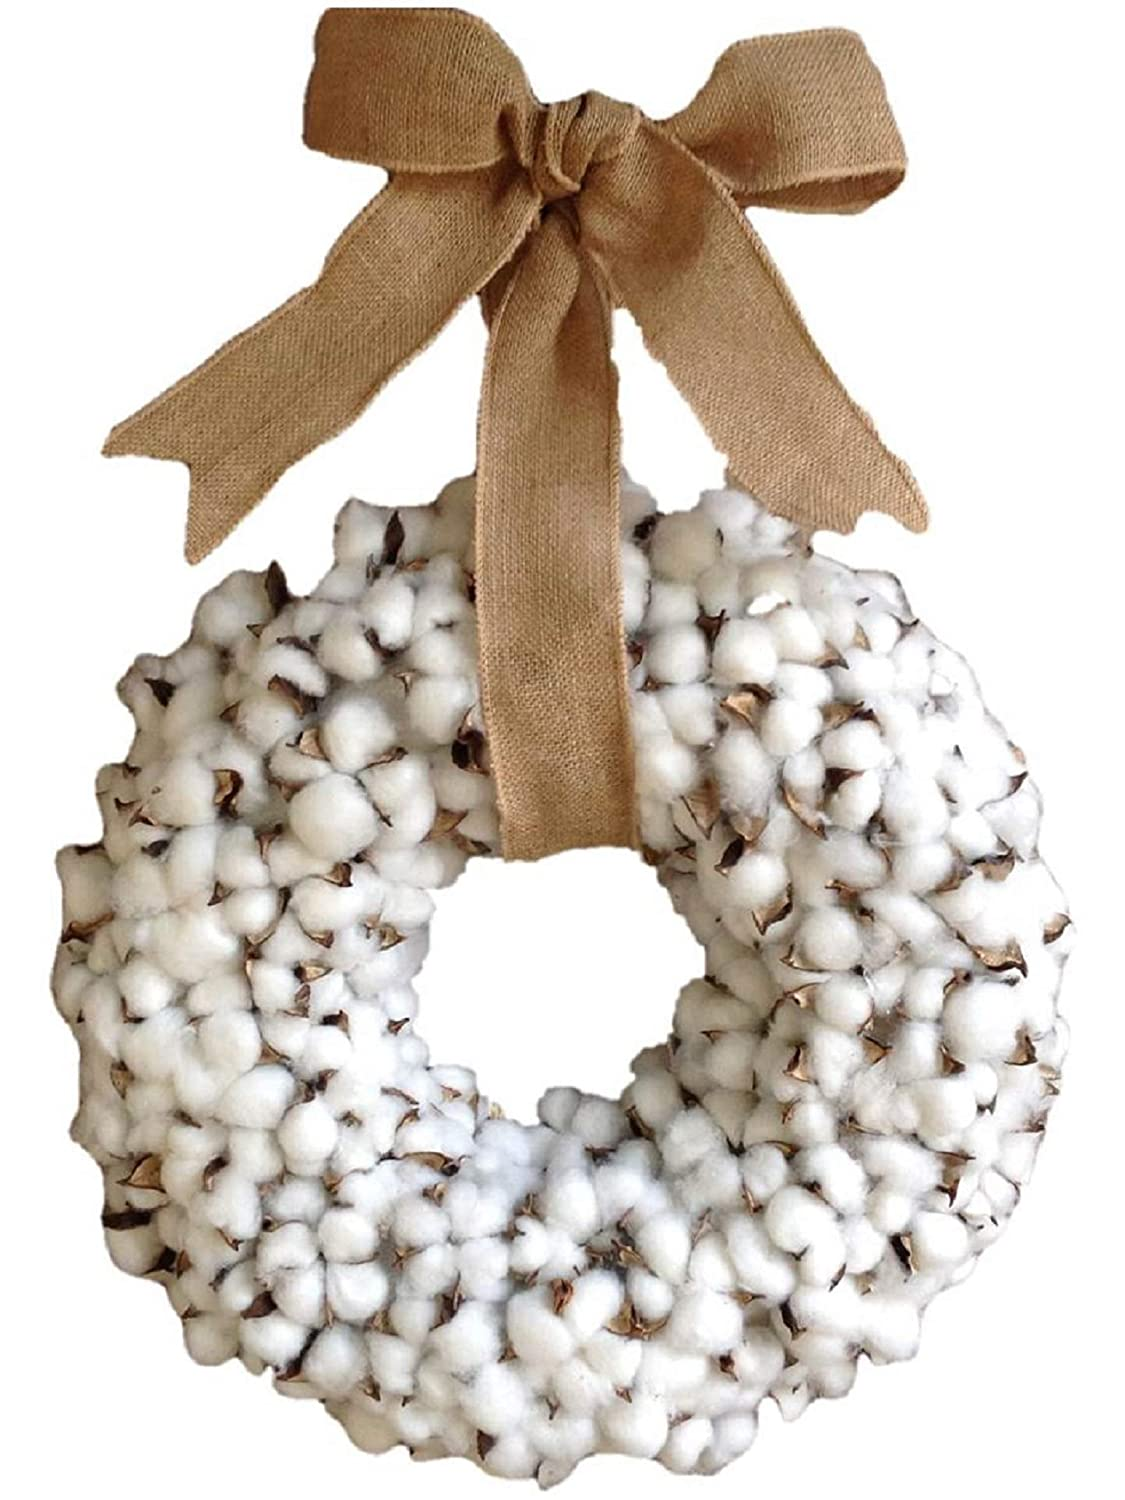 Flora Décor Vintage Faux Cotton Wreath Burlap Bow - 20